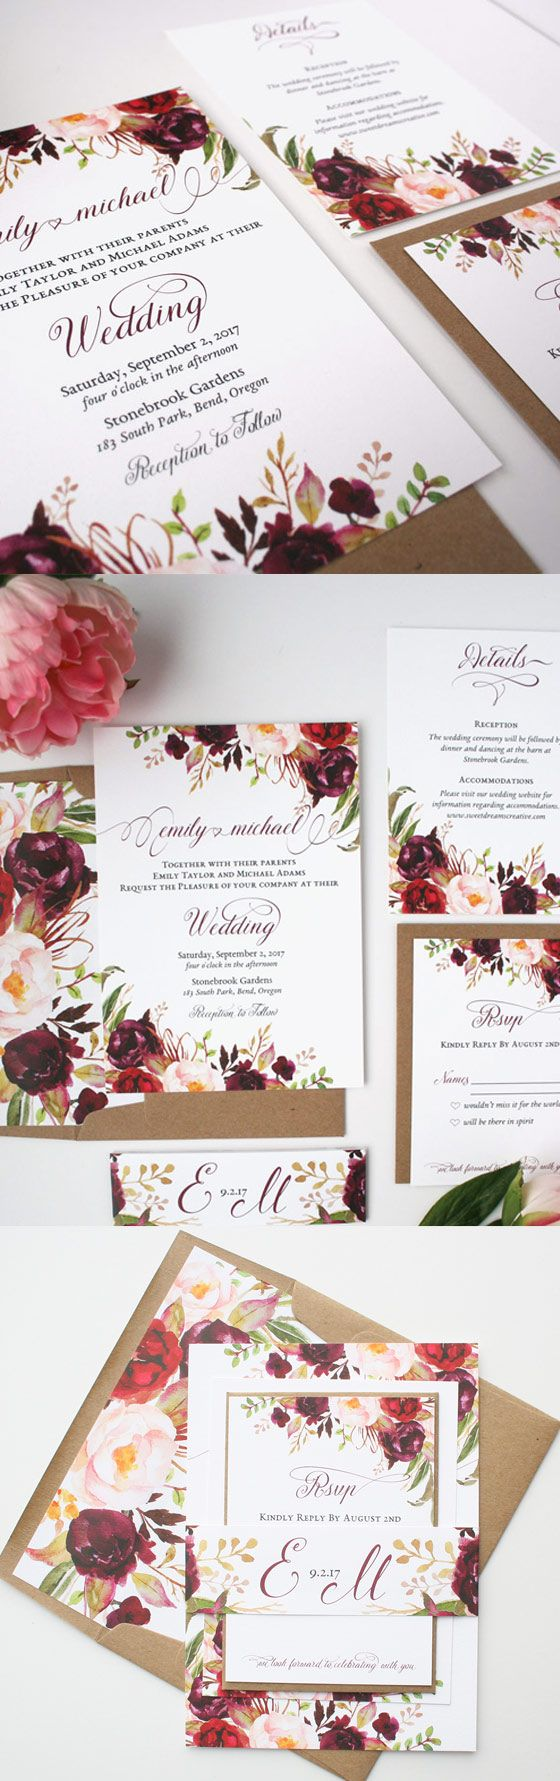 Fall Wedding Invitations - Burgundy & Blush Wedding Invitation Suite ...